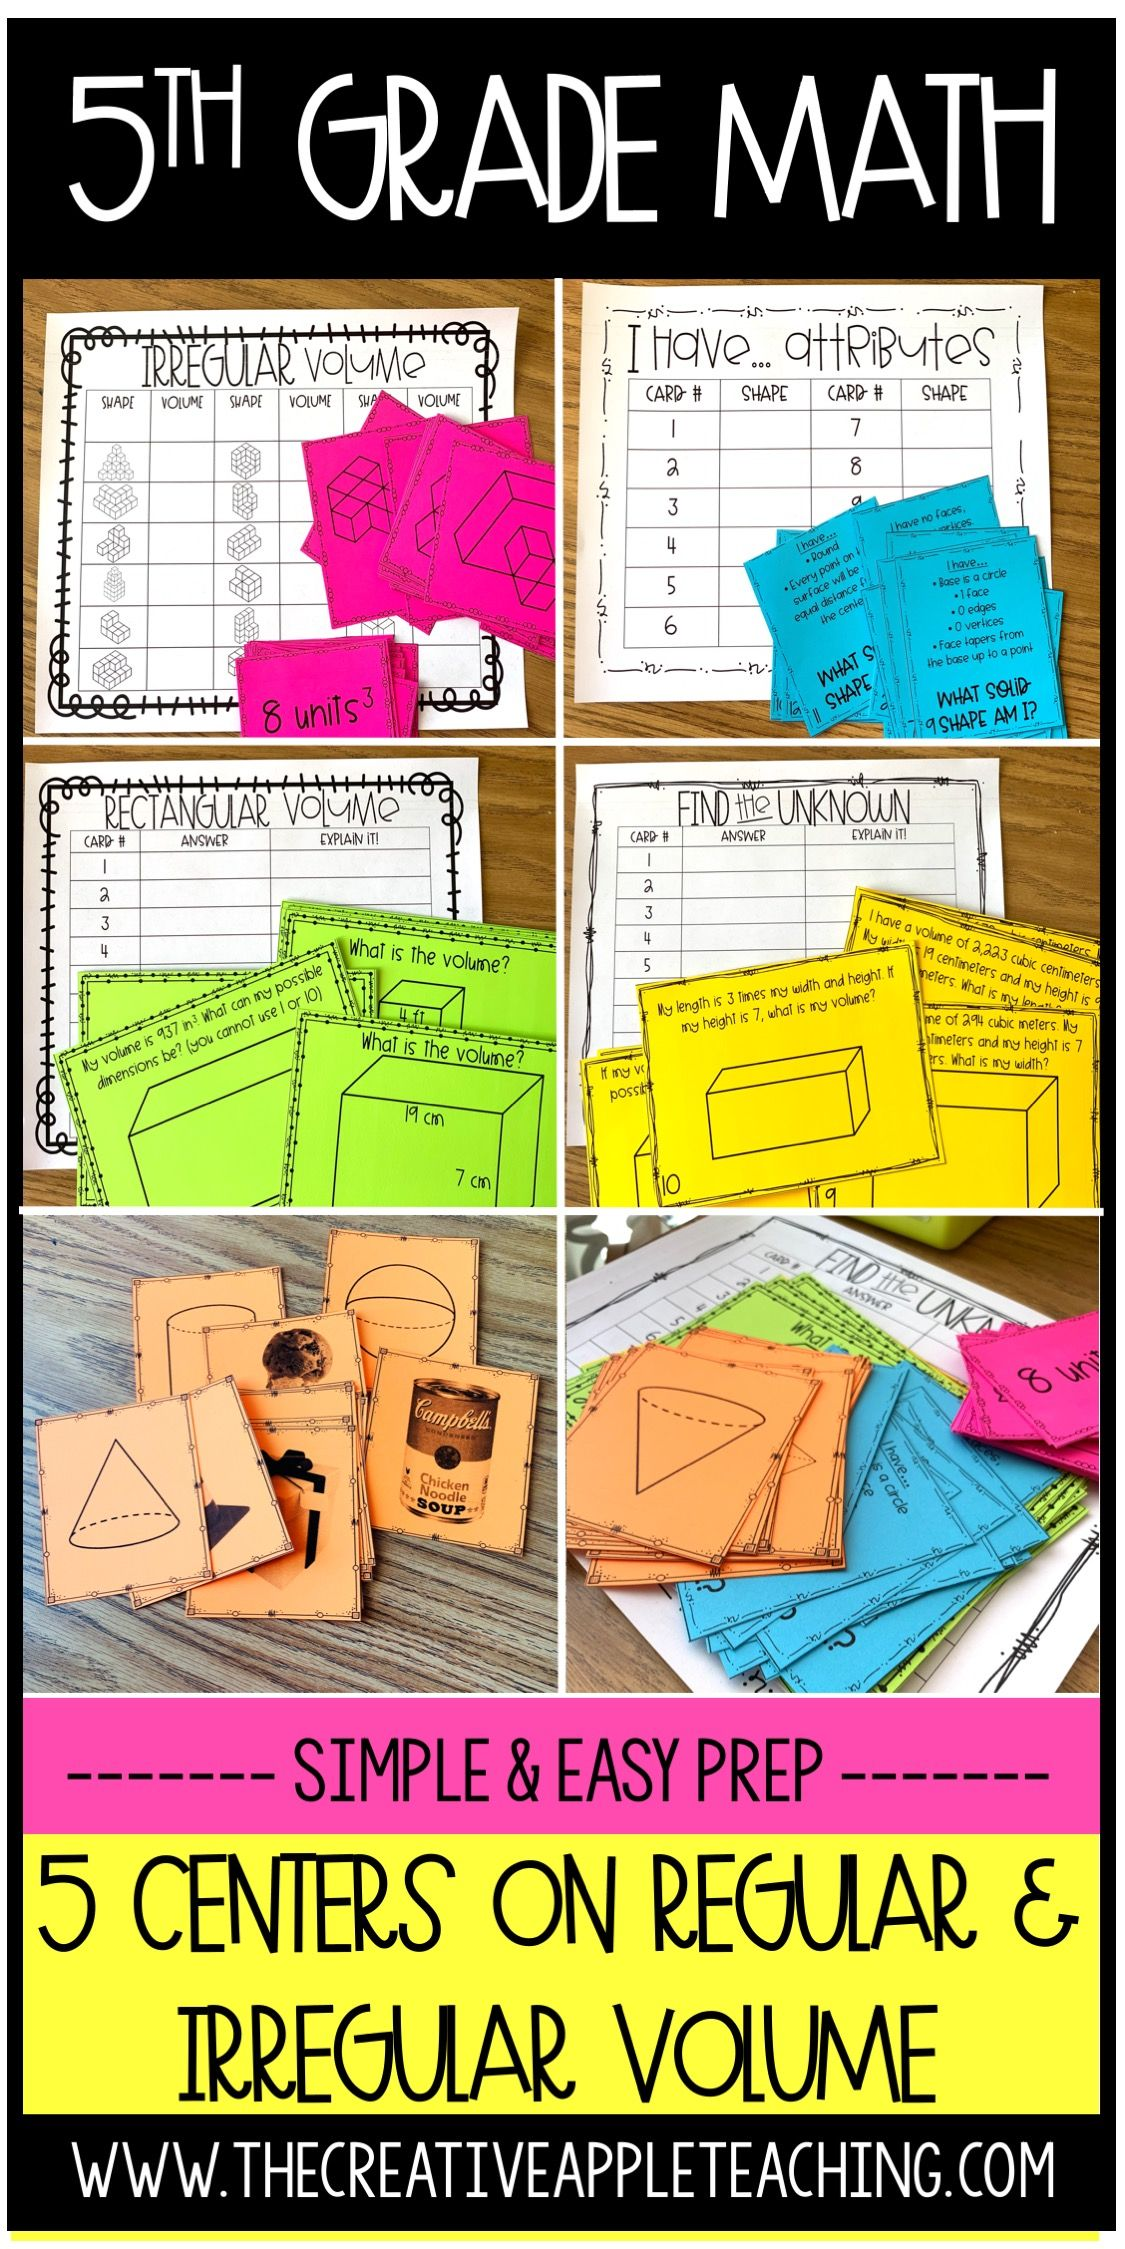 Pin On Tpt Math Resources For The Classroom